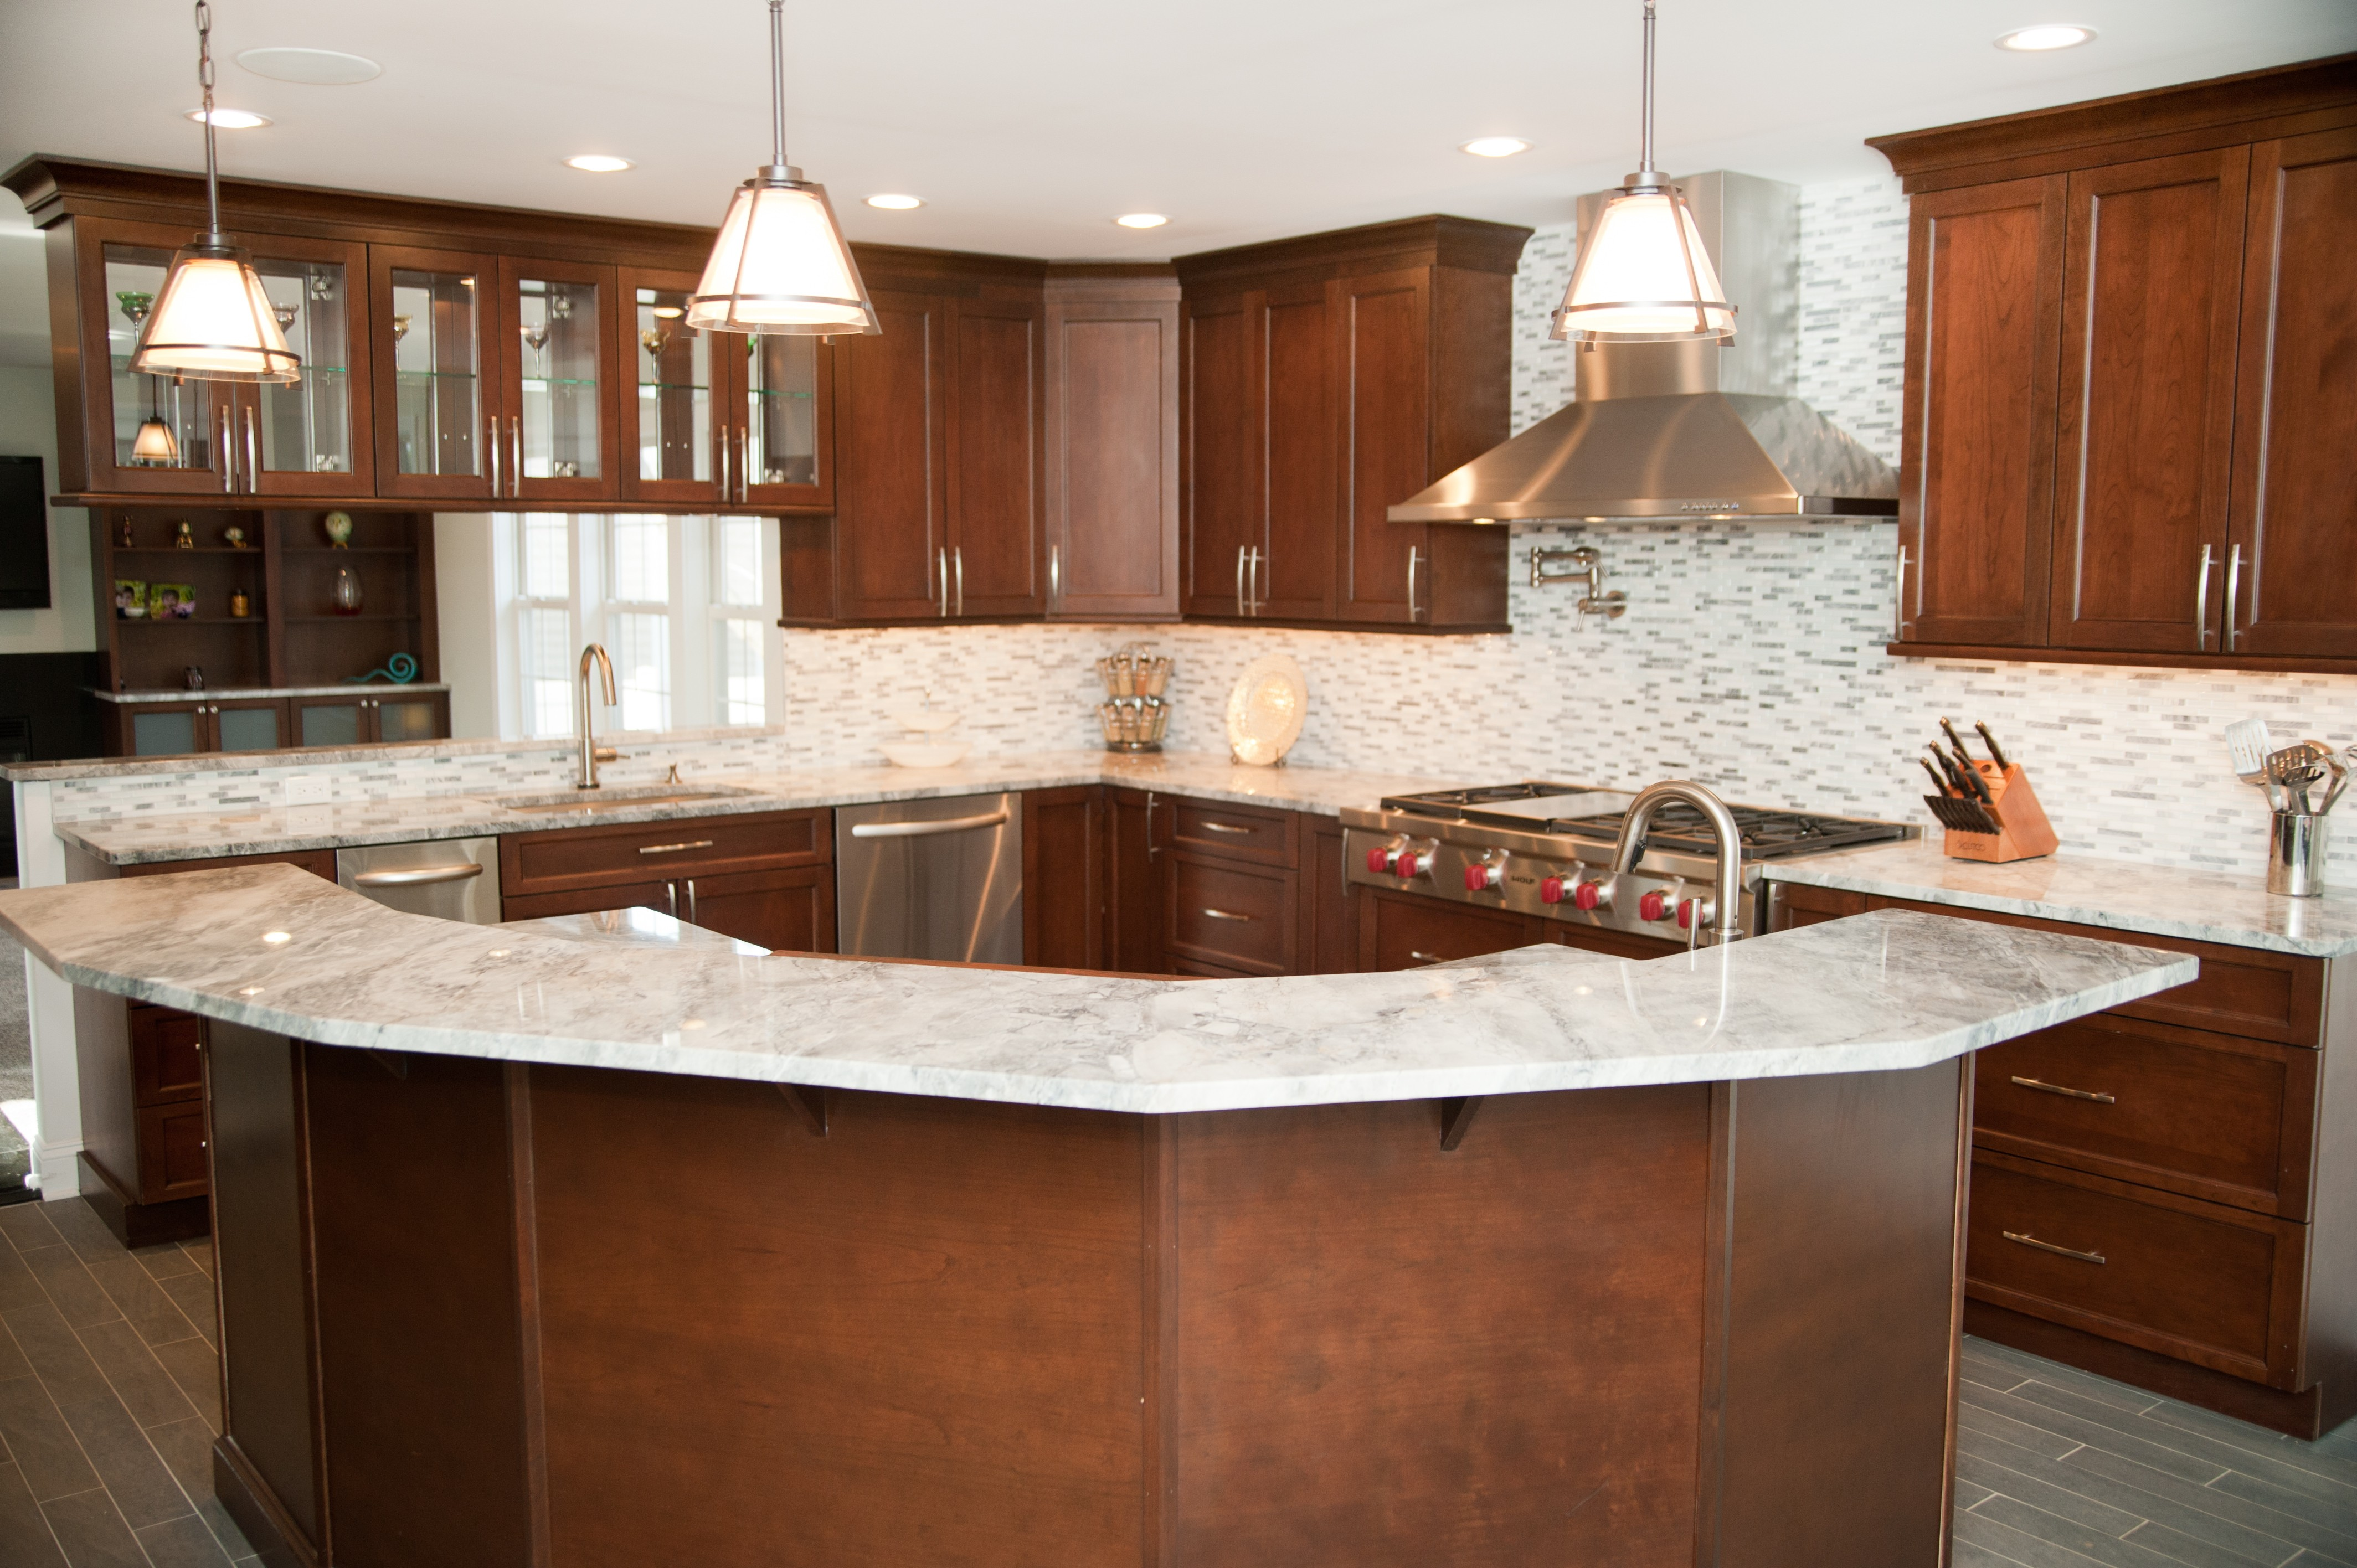 where to start when remodeling a kitchen home depot island lighting design build case study gourmet remodel morris nj